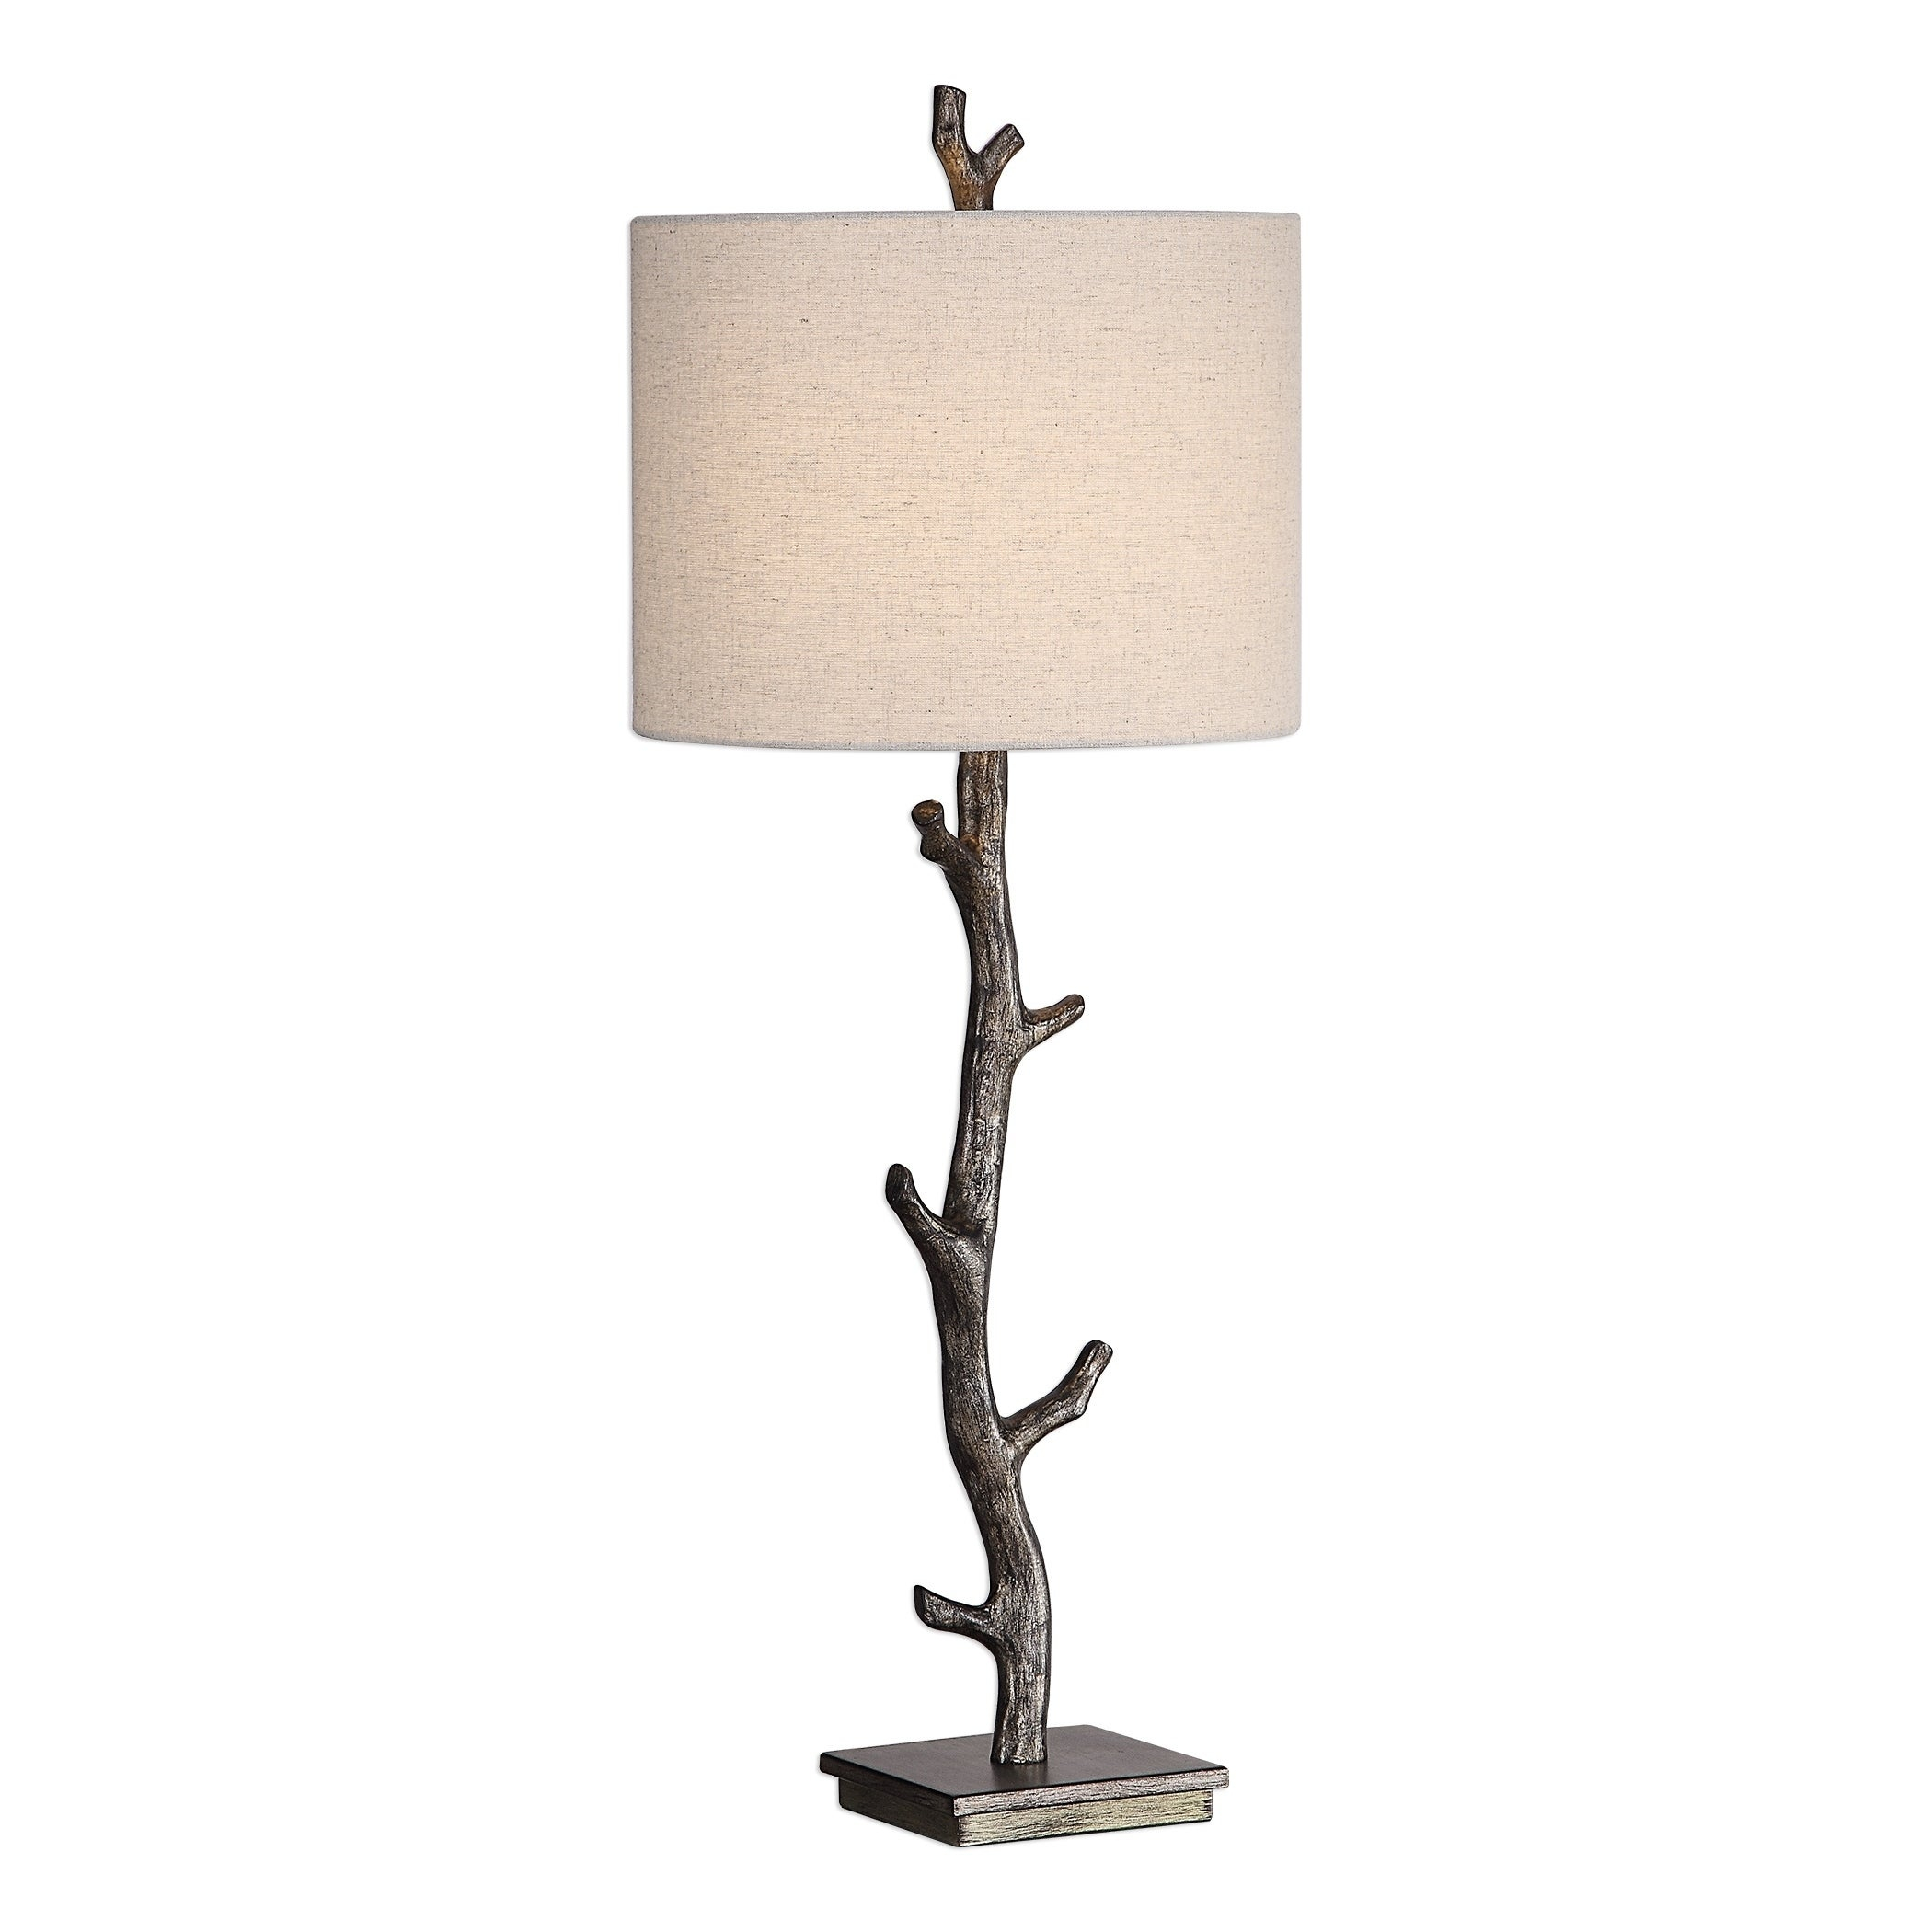 Details About Table Lamp Shade Set Light Bronze Branch Rustic Decor Home Cabin Lodge New in sizing 2100 X 2100